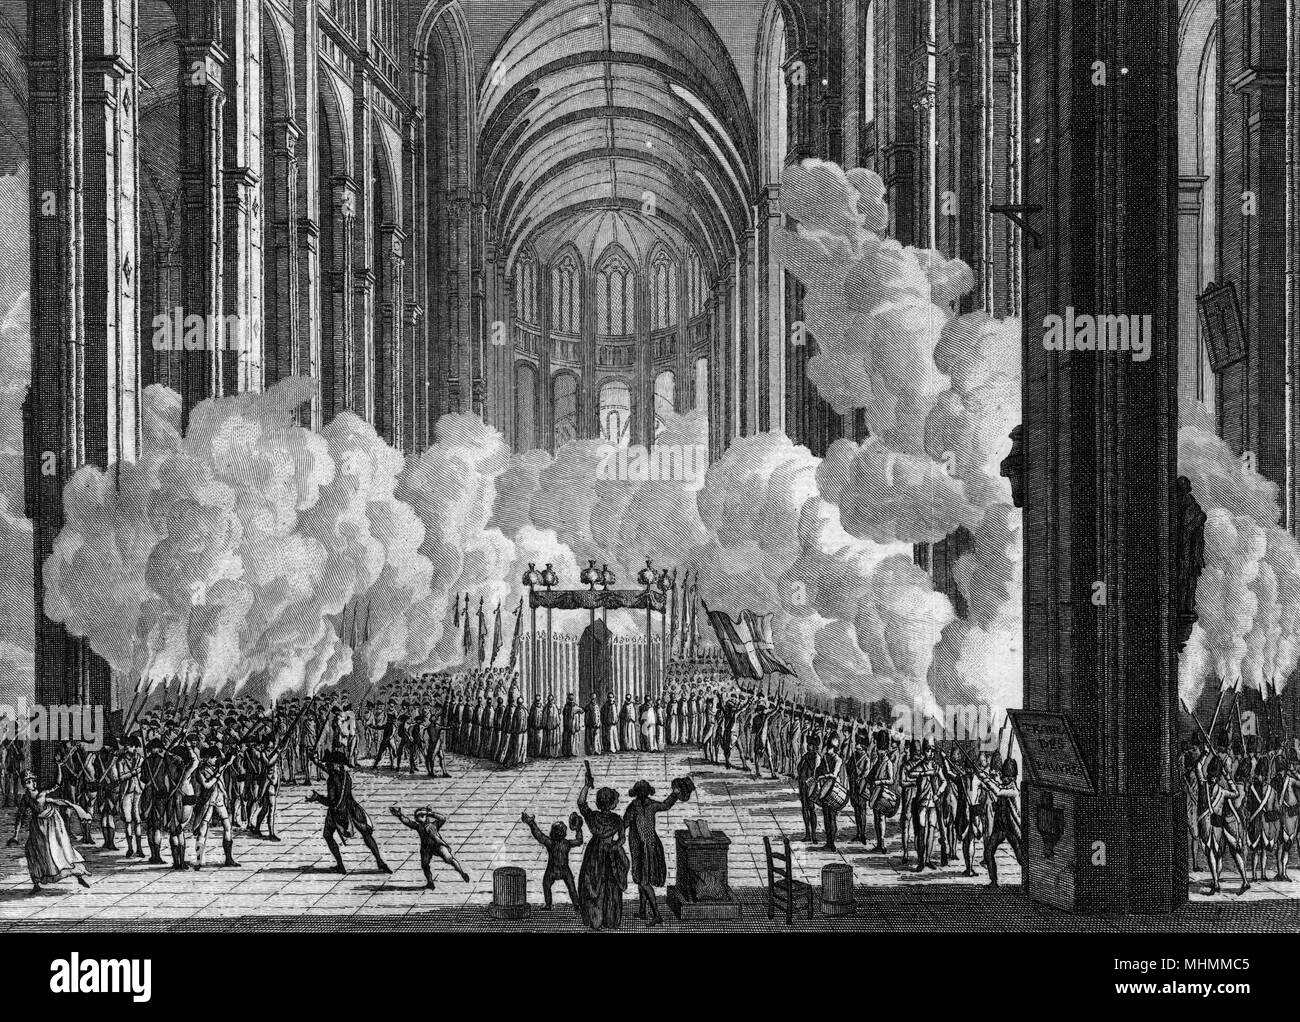 The body of Mirabeau, regarded as a hero of the Revolution, is treated to a salvo of musketry in the church of Saint-Eustache, Paris.      Date: 4 April 1791 - Stock Image